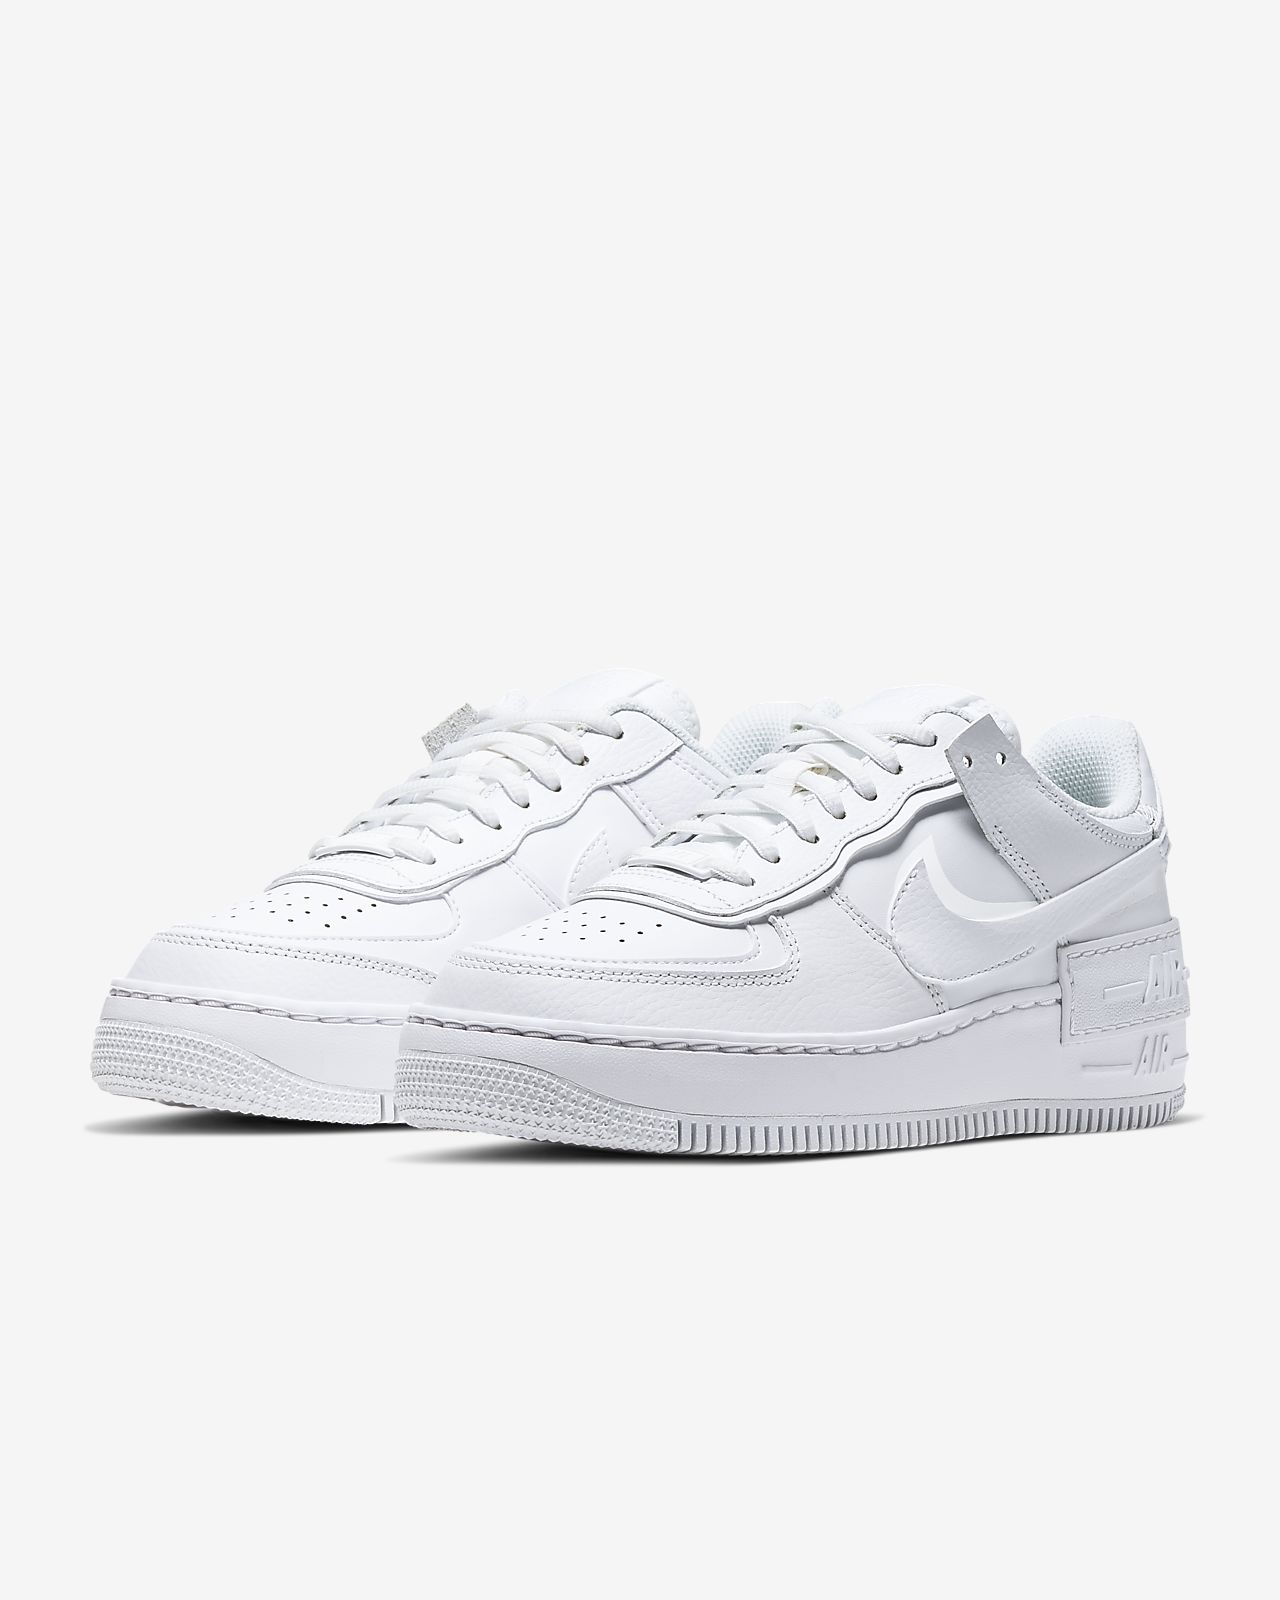 nike air force 1 shadow donna bianche e nere